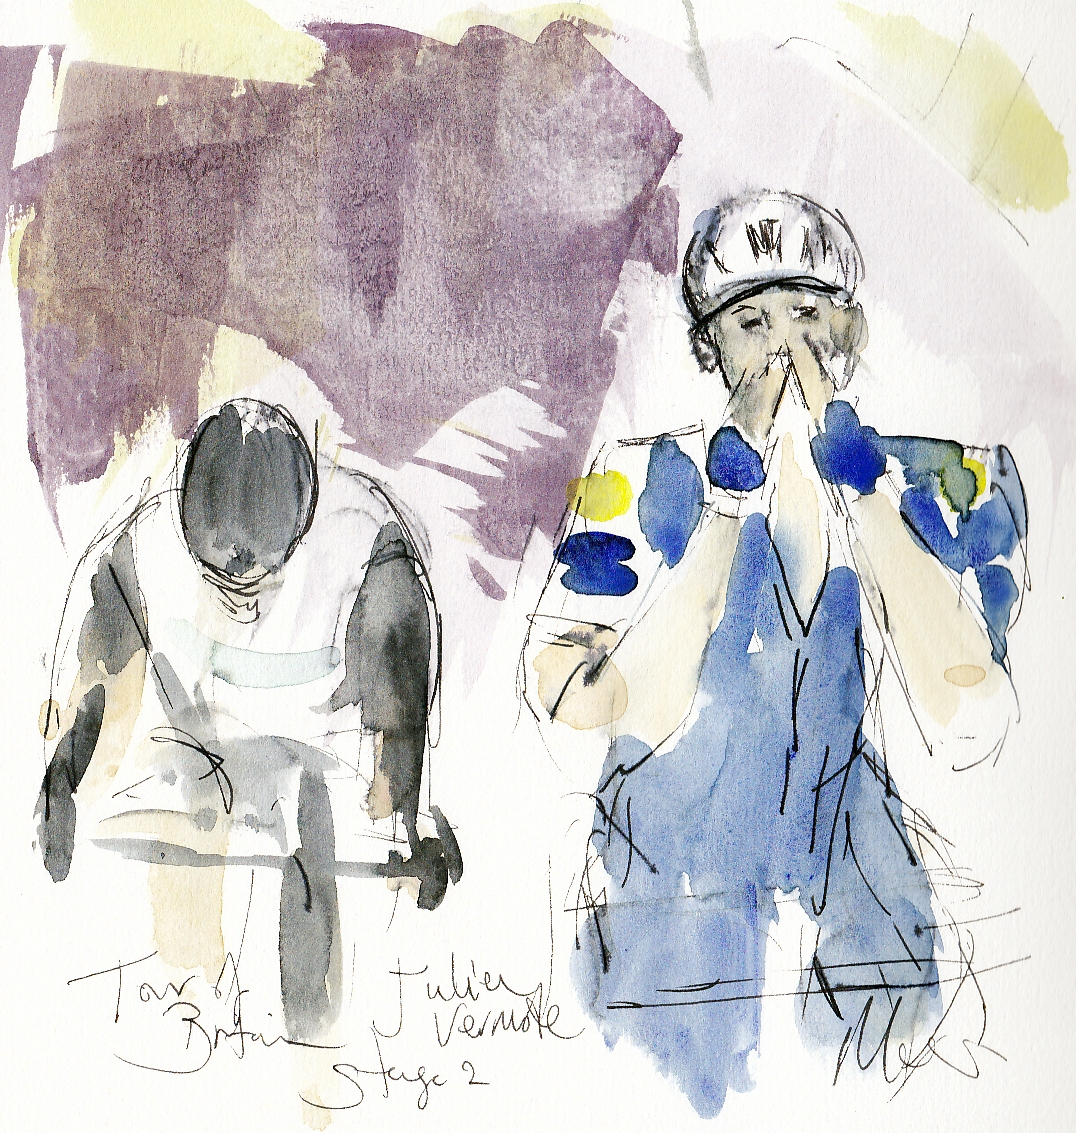 Cycling, art, Julien Vermote, Maxine Dodd